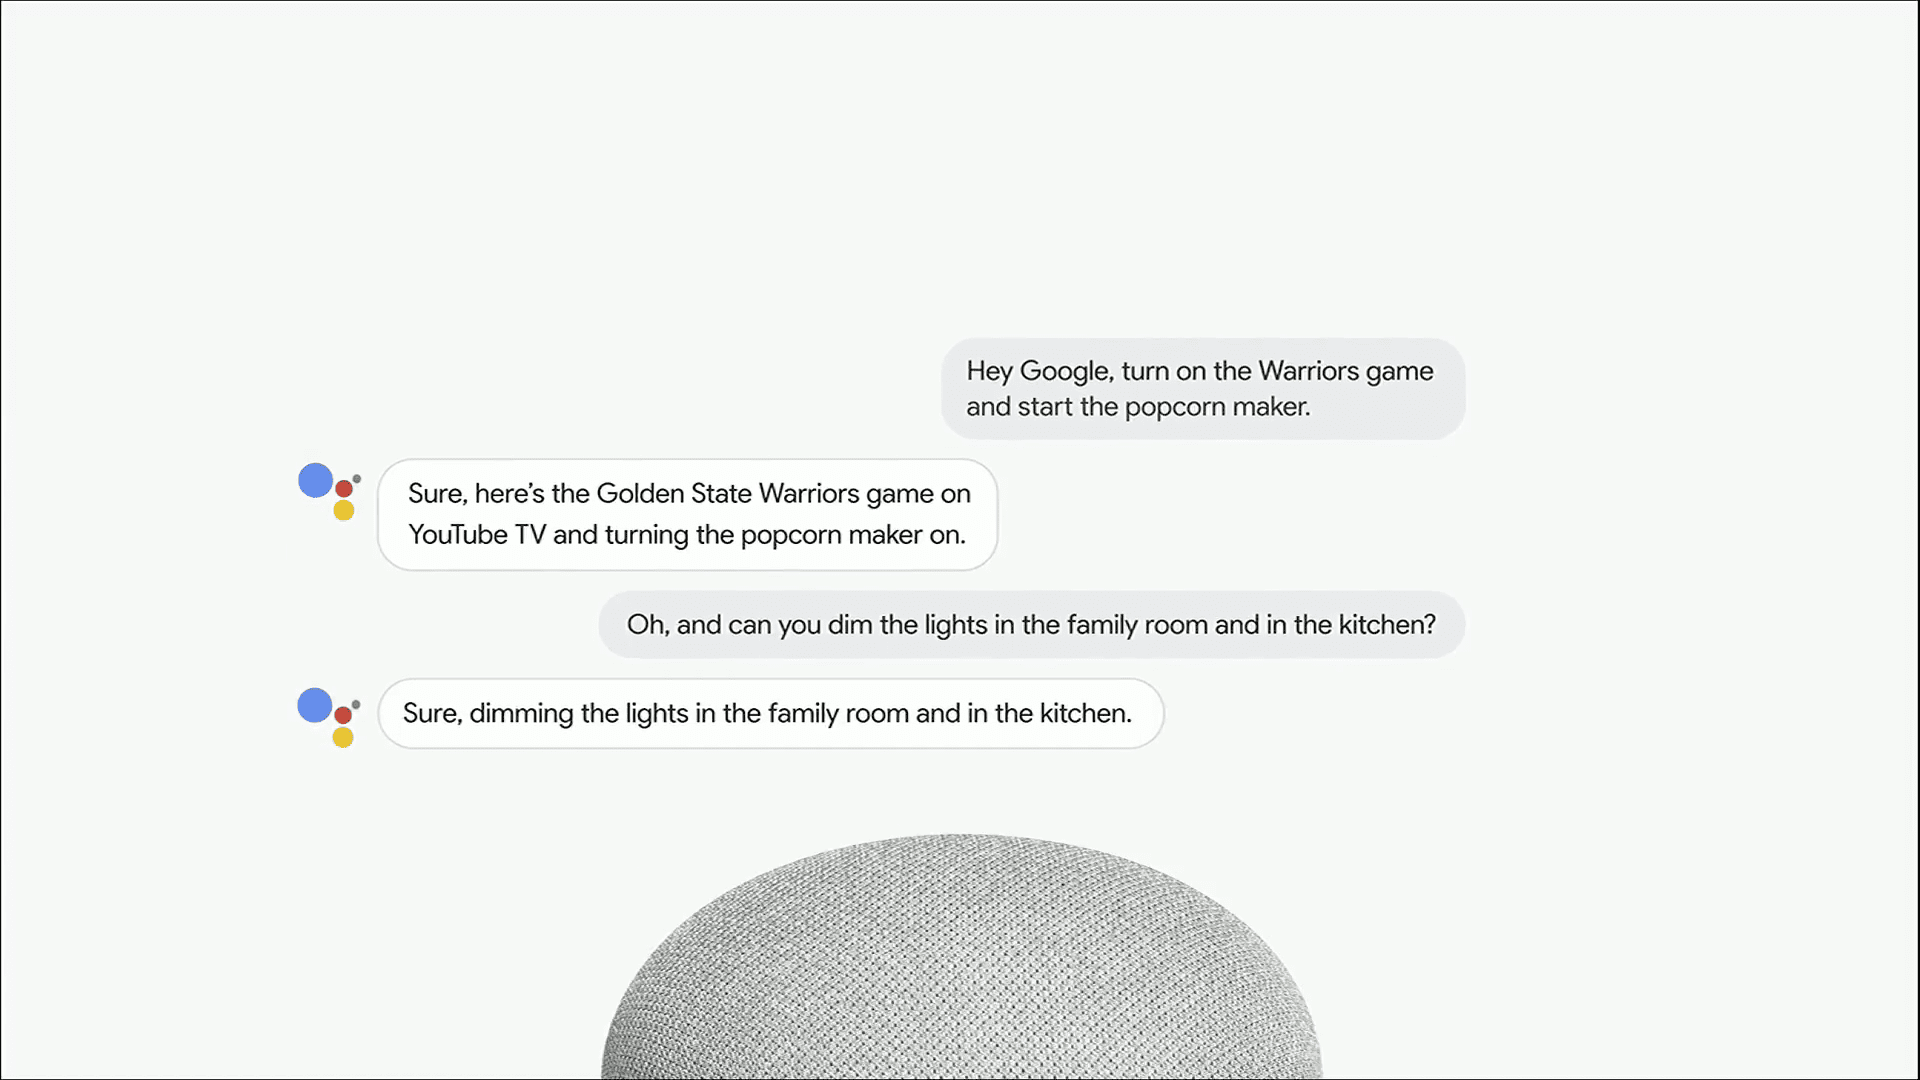 Continued Conversation and Multiple Actions in Google Assistant